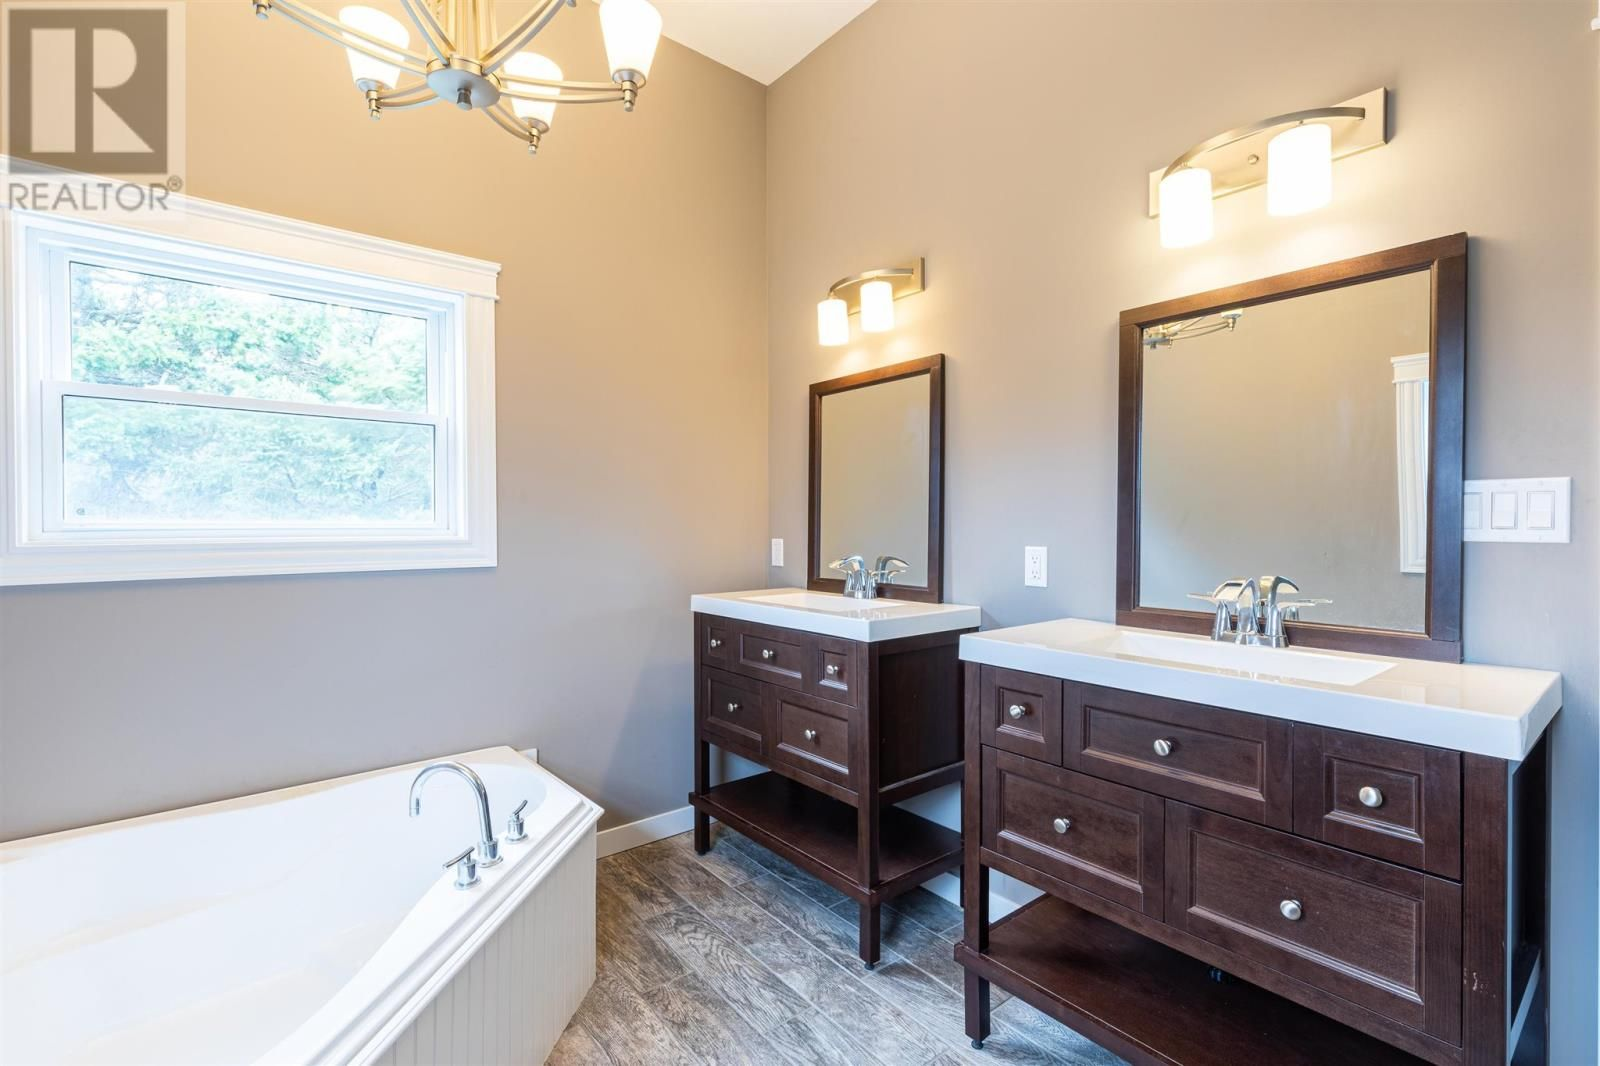 Photo 16: Photos: 5 Cherry Lane in Stratford: House for sale : MLS®# 202119303